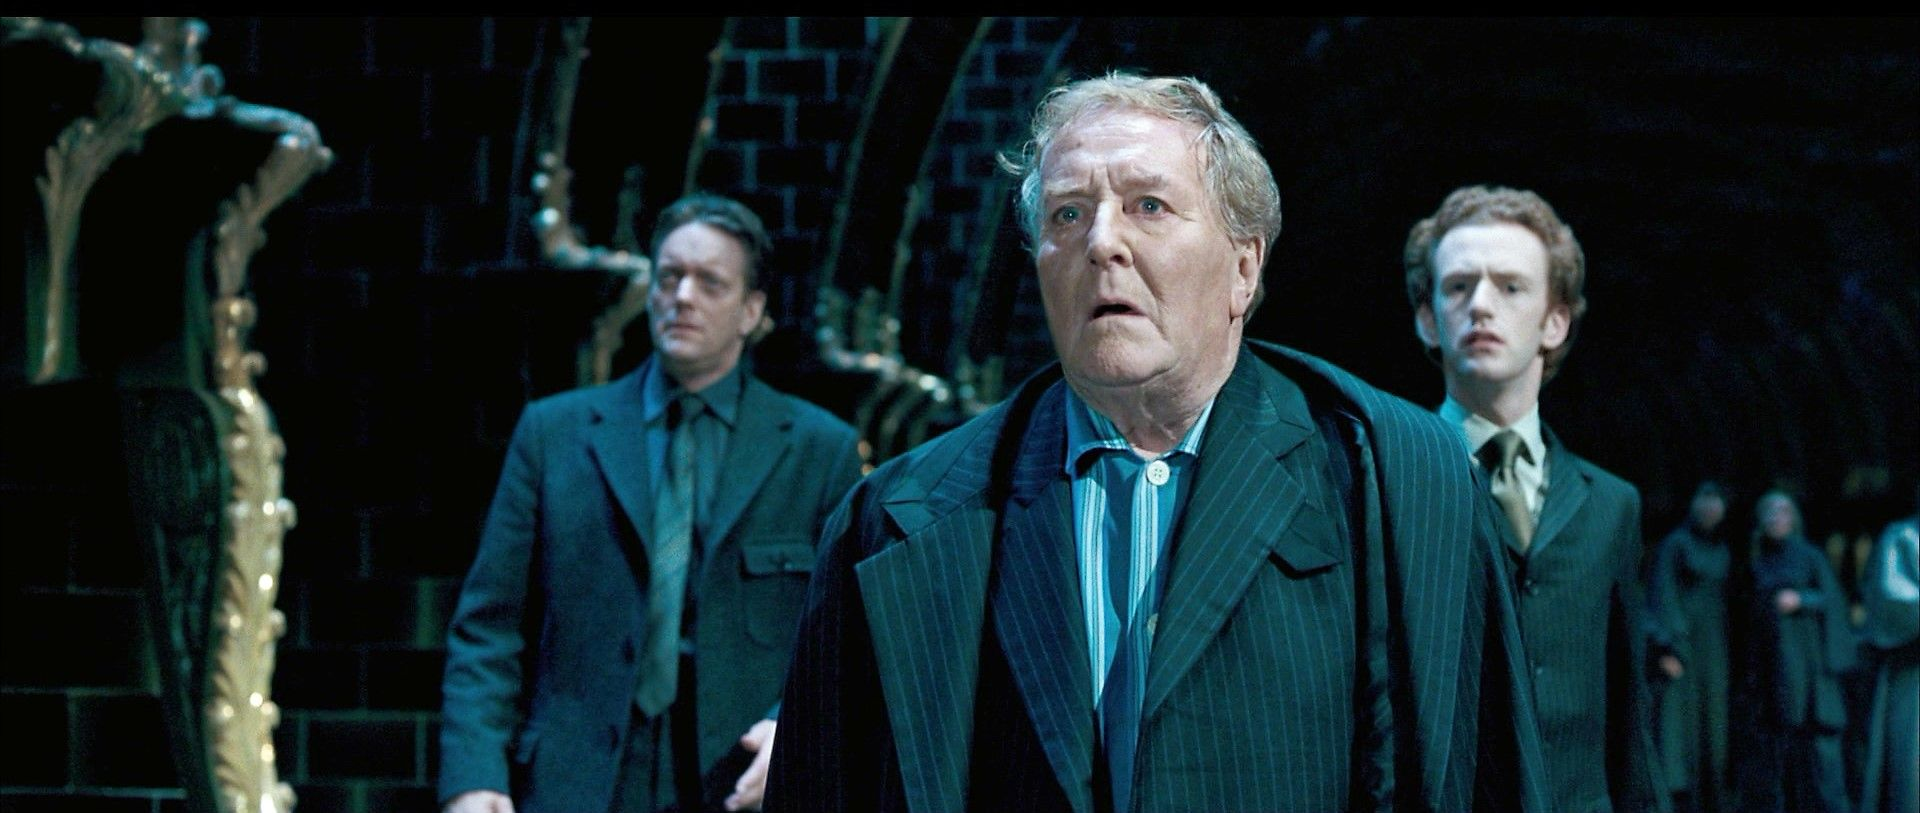 Pin By Lyss On Percy Weasley Harry Potter Actors Robert Hardy Harry Potter